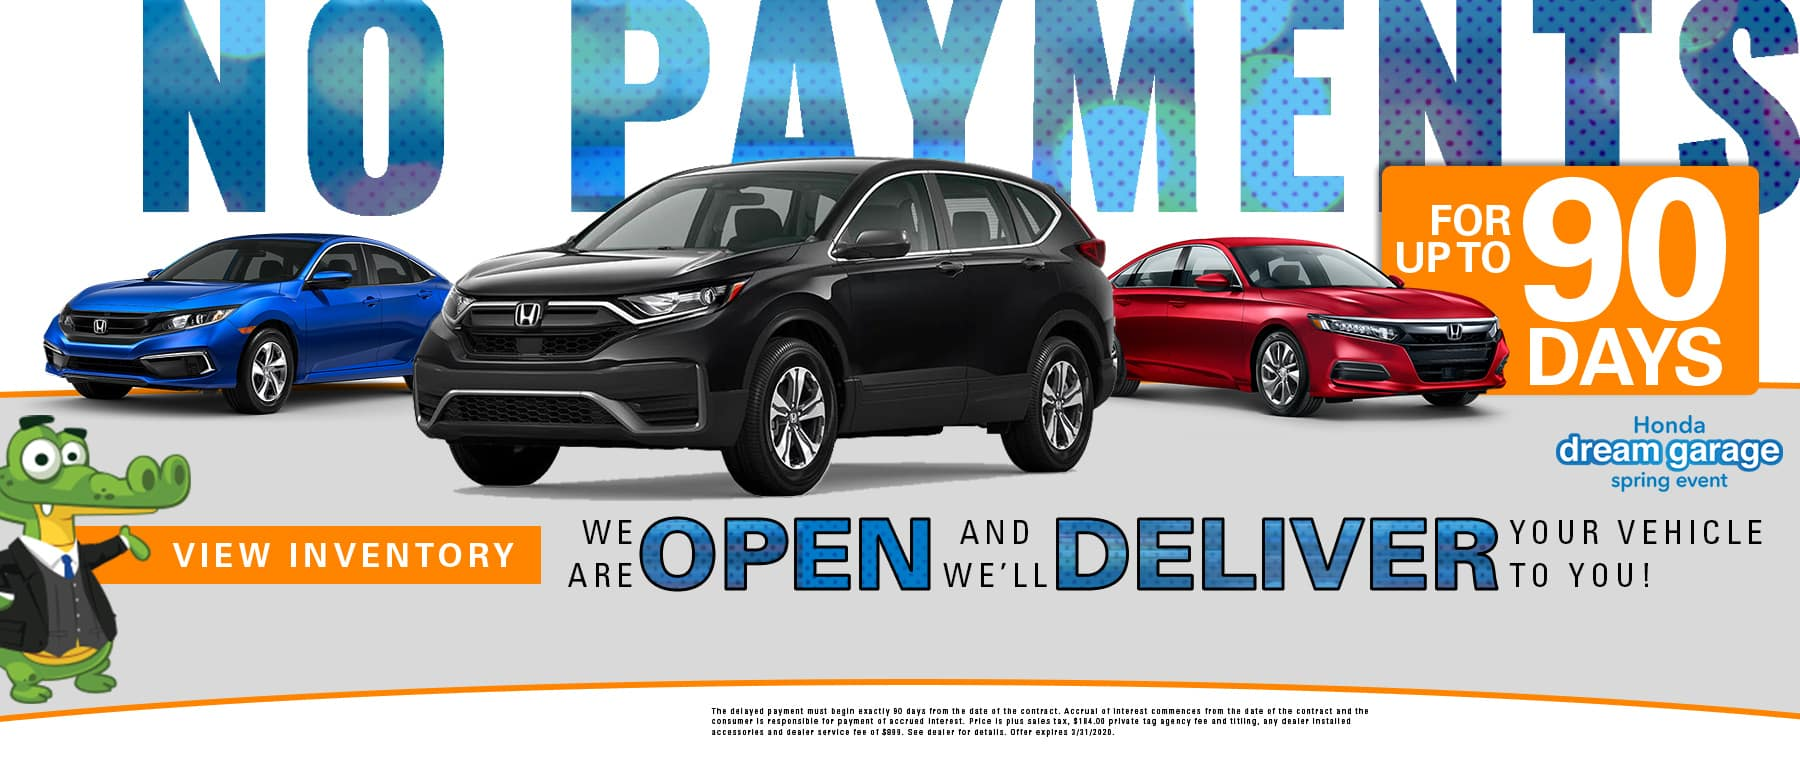 No Payments For Up To 90 Days | We Are Open & We'll Deliver Your Vehicle To You! | Honda Dream Garage Spring Event